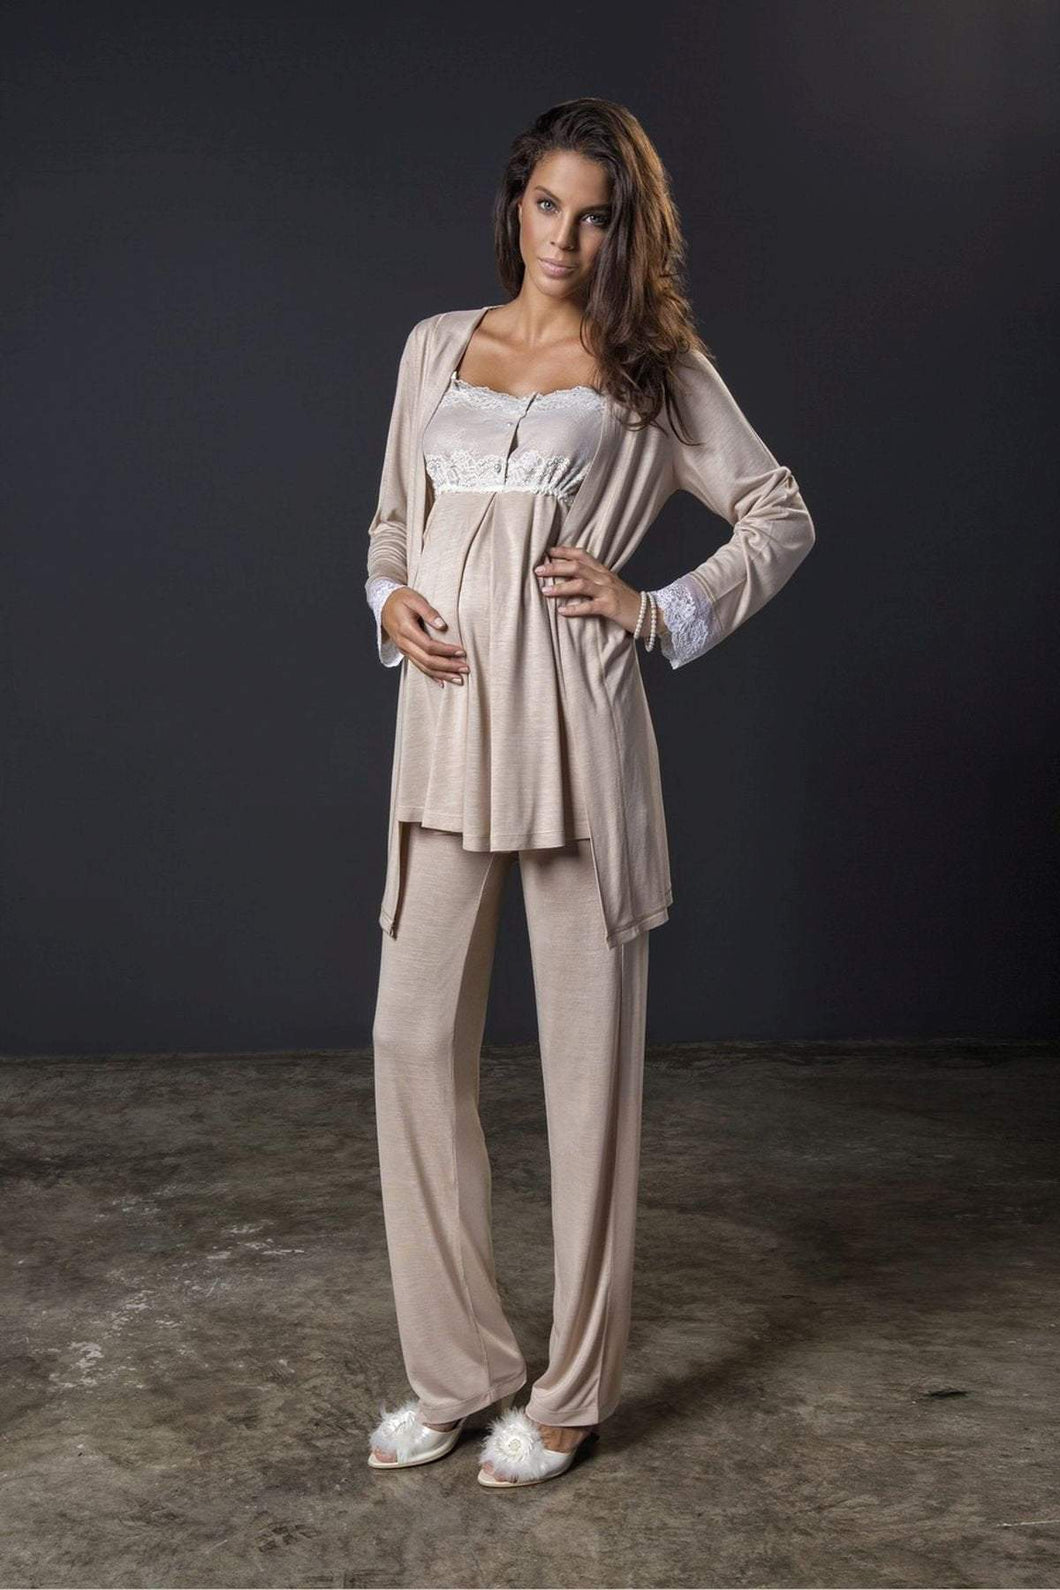 3 Piece Maternity and Nursing Pajama Set w/Pretty Lace Details Featuring Nursing Top Pants and Robe with Belt